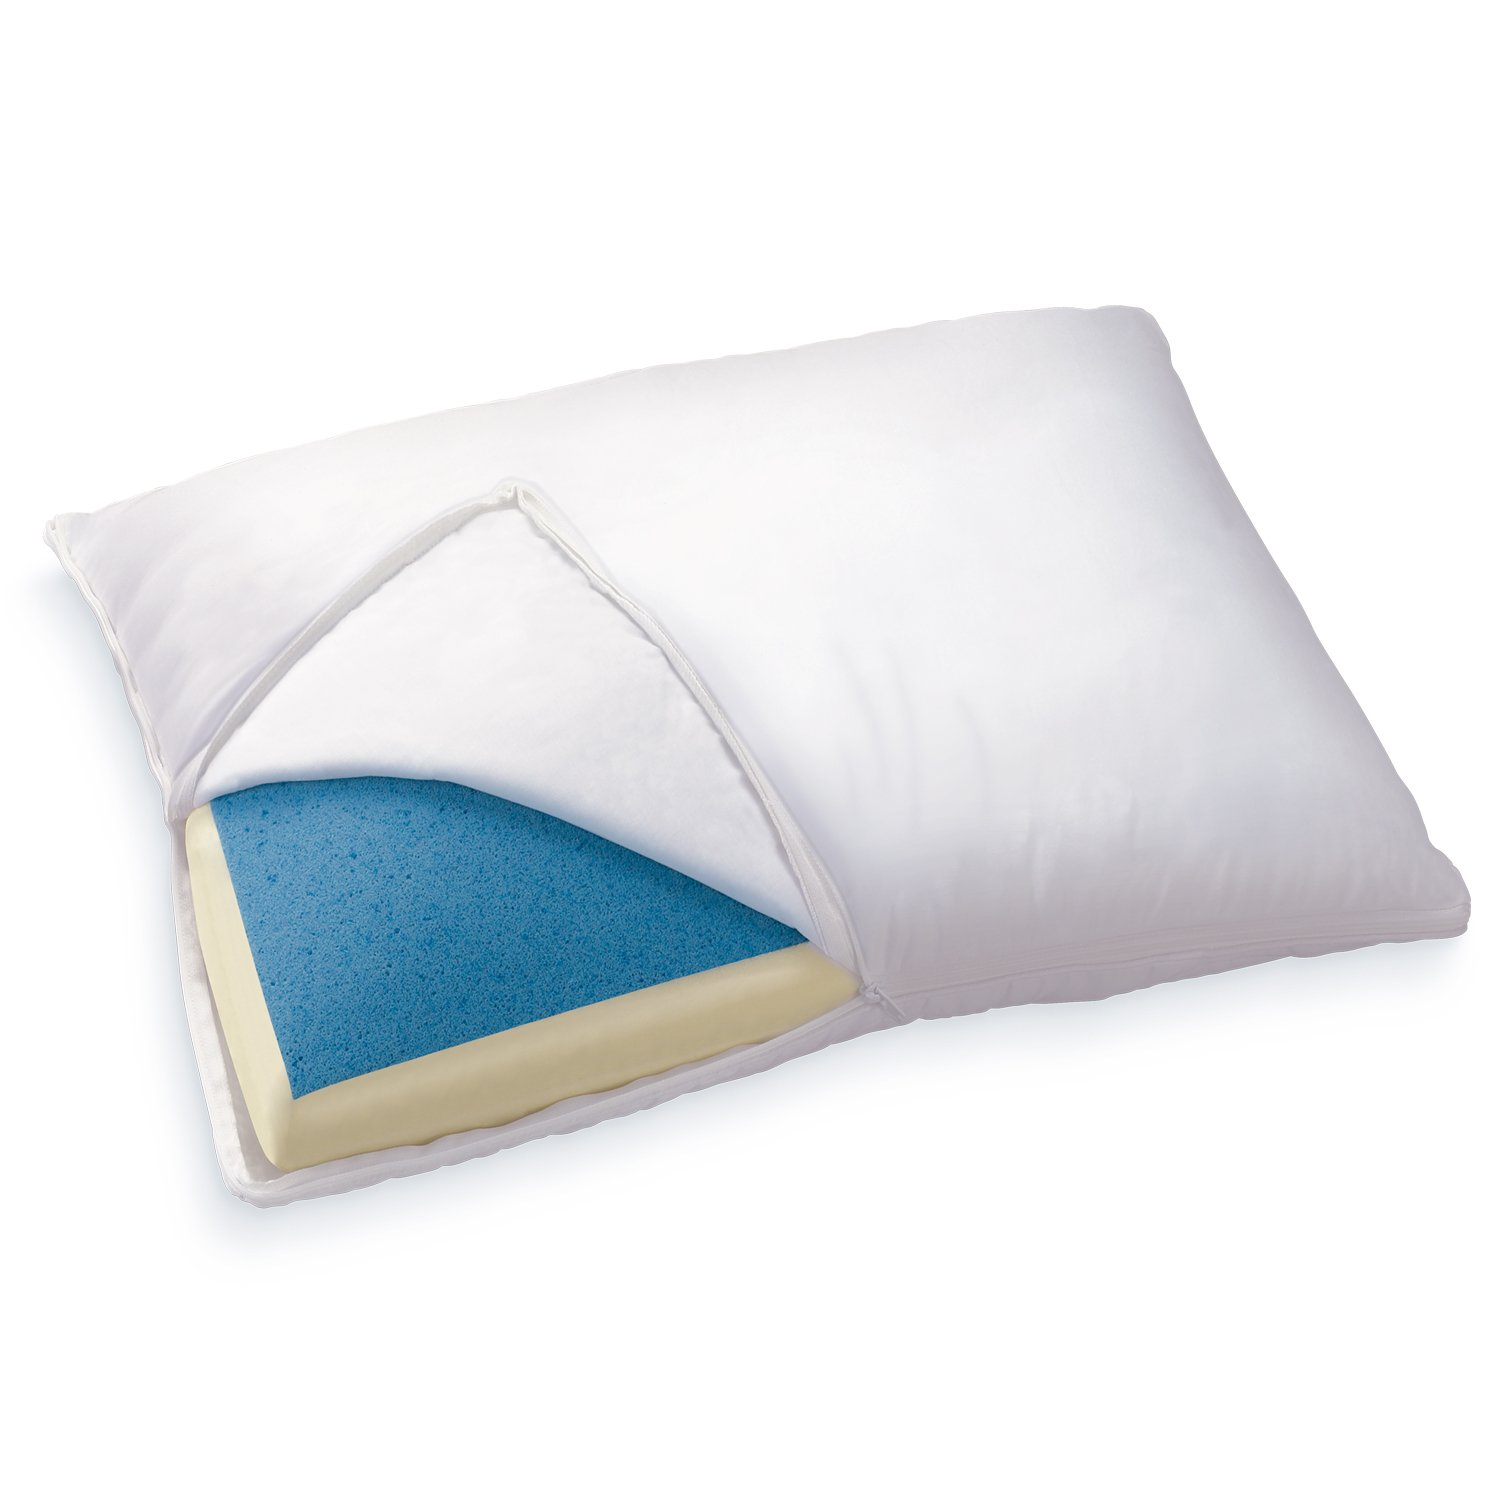 Top 10 Best Memory Foam Pillow (2020 Review & Buying Guide) 2